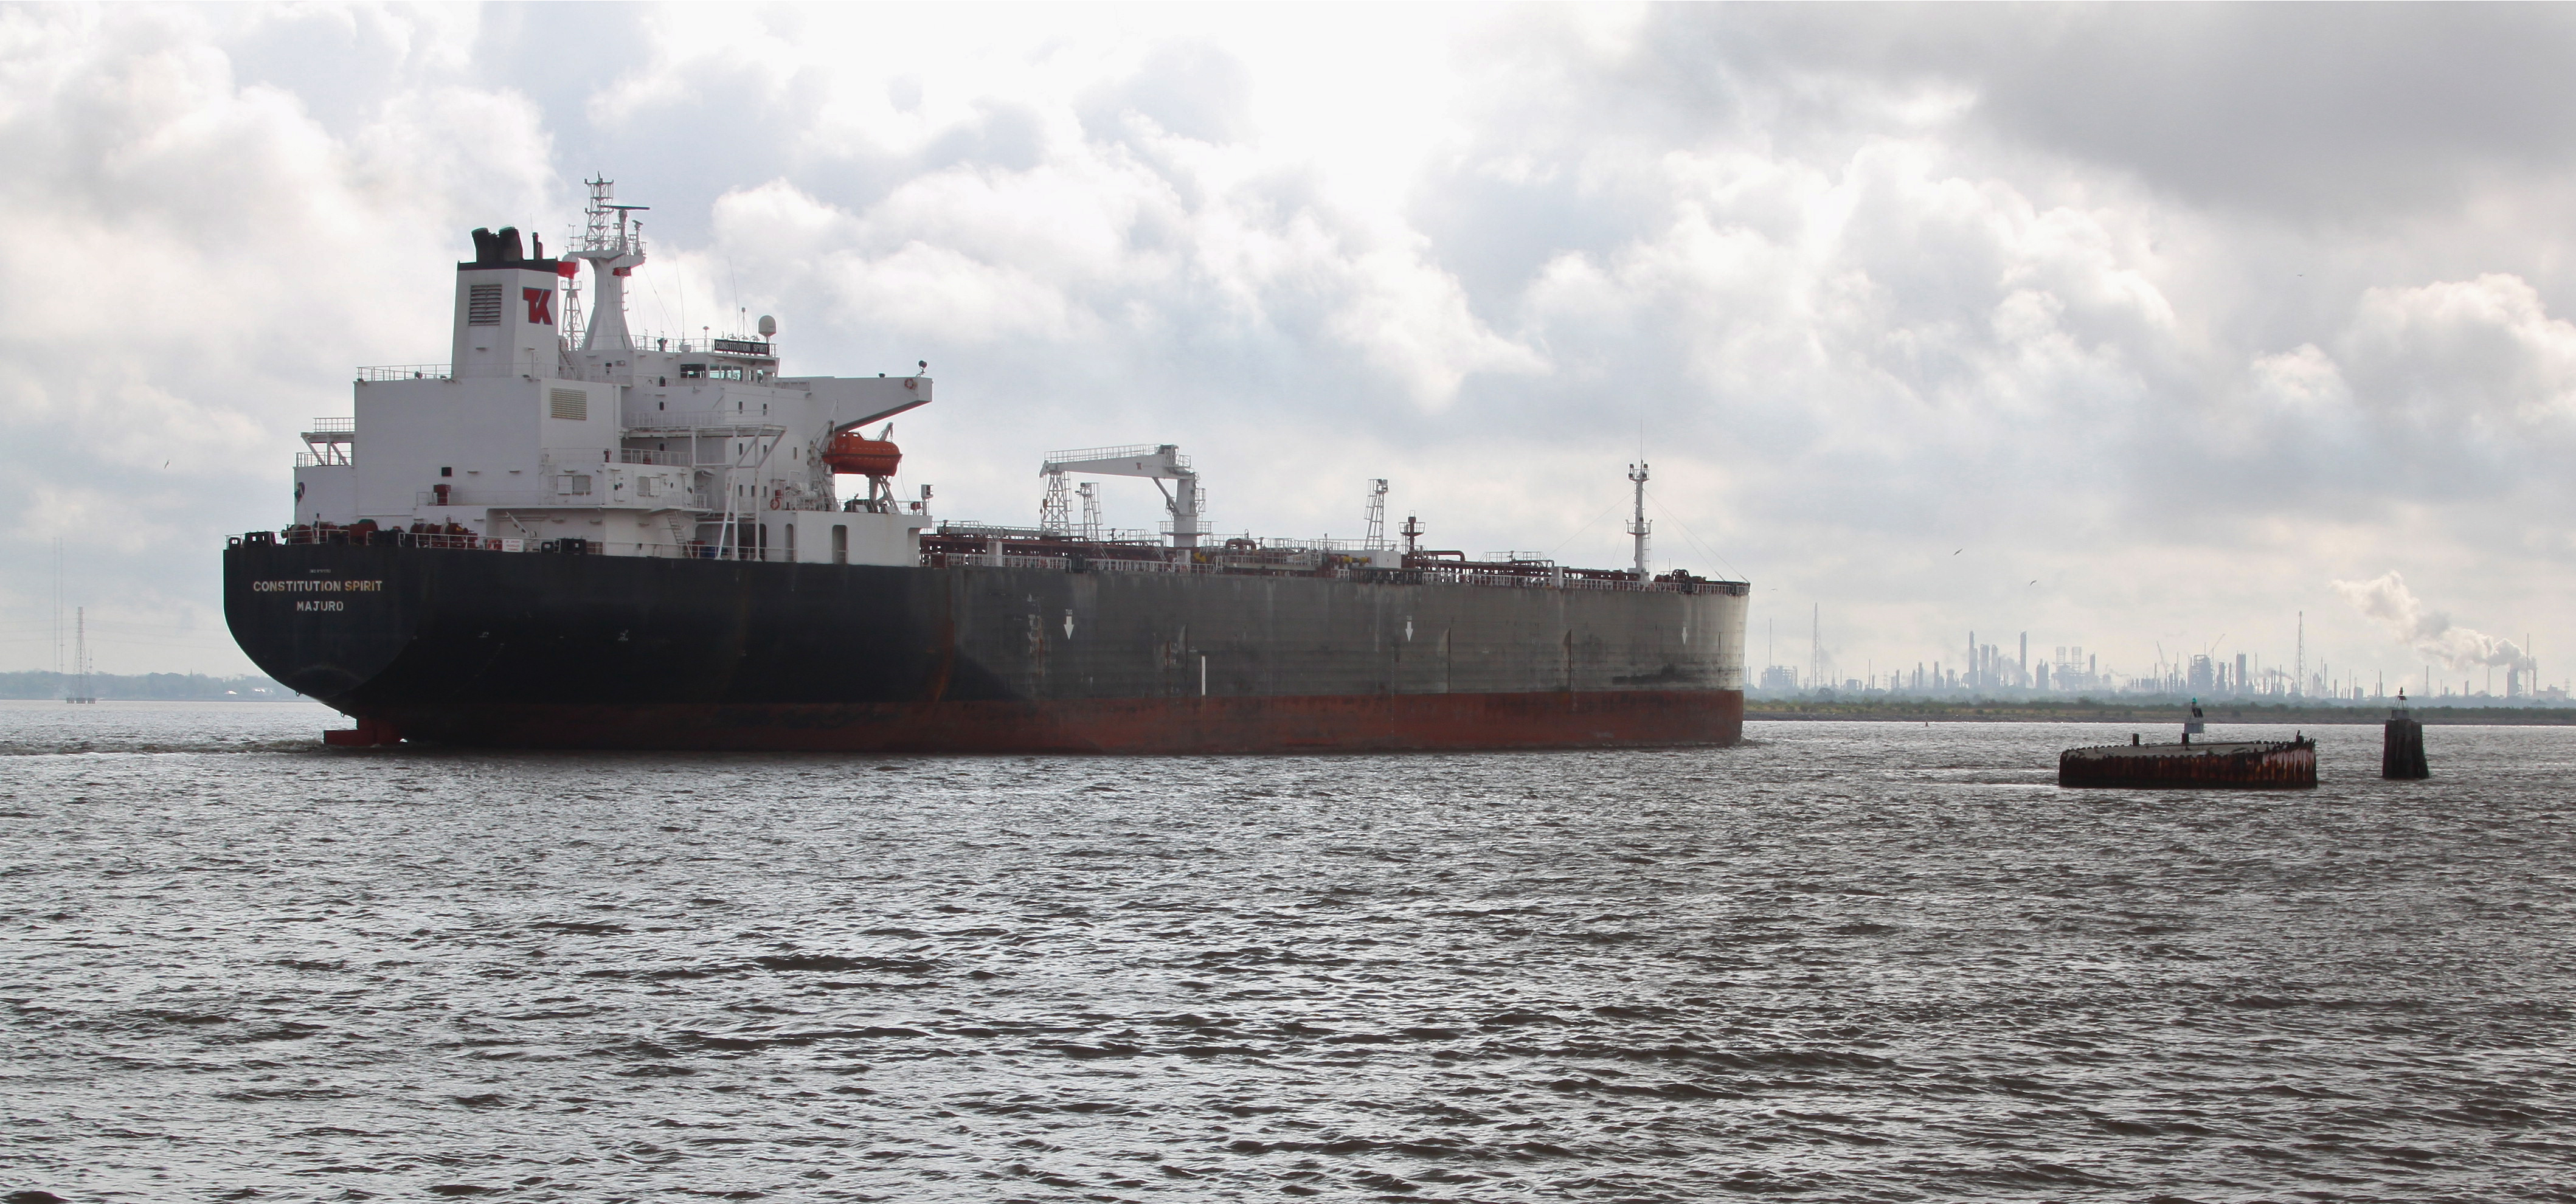 Tanker 'Constitution Spirit' steams towards Galveston Bay